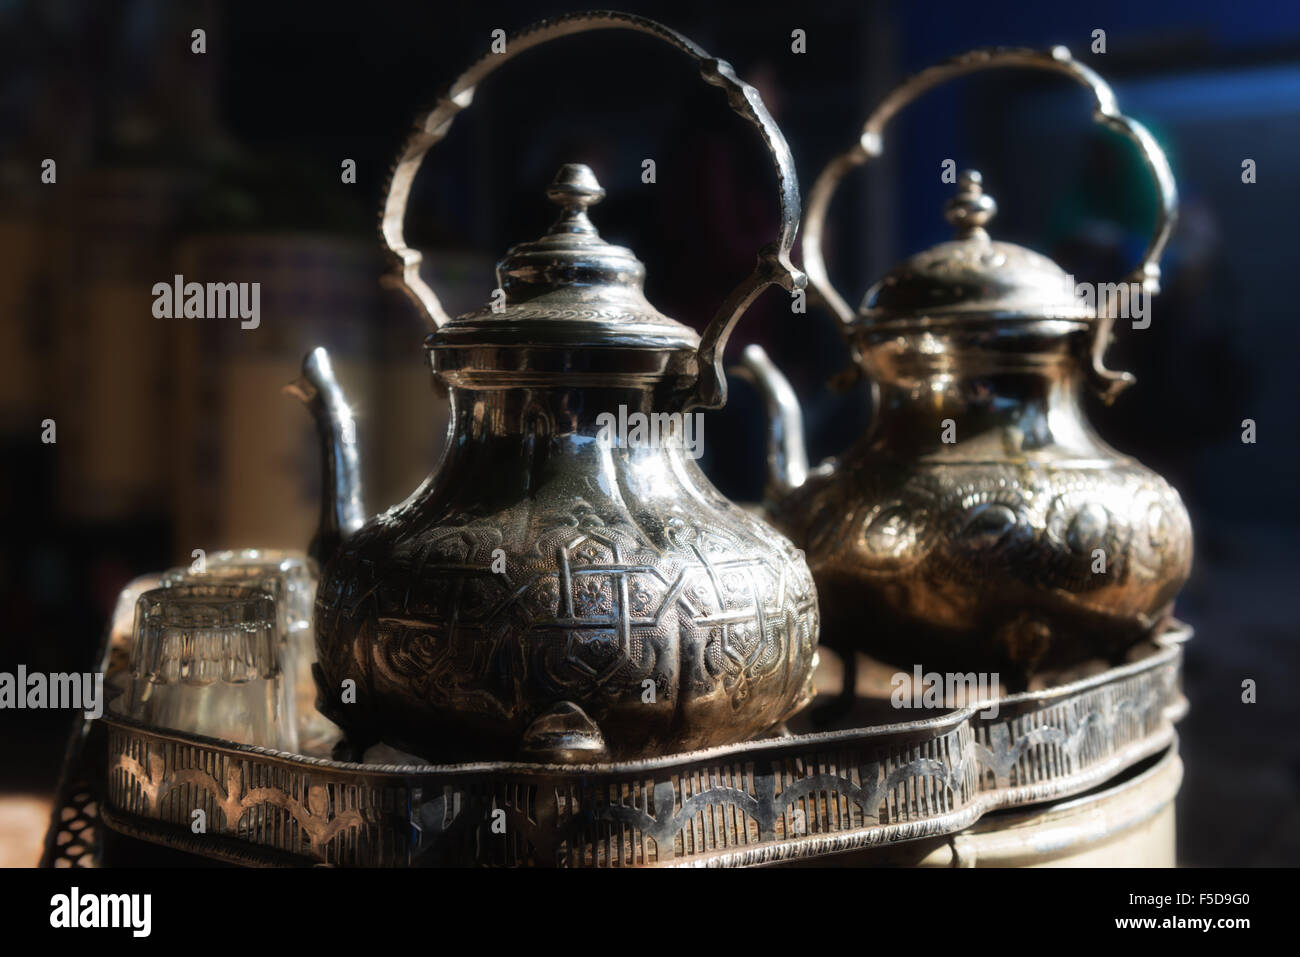 Traditional Moroccan teapot with glasses in a tea tray. Medina of Marrakesh, Morocco. - Stock Image